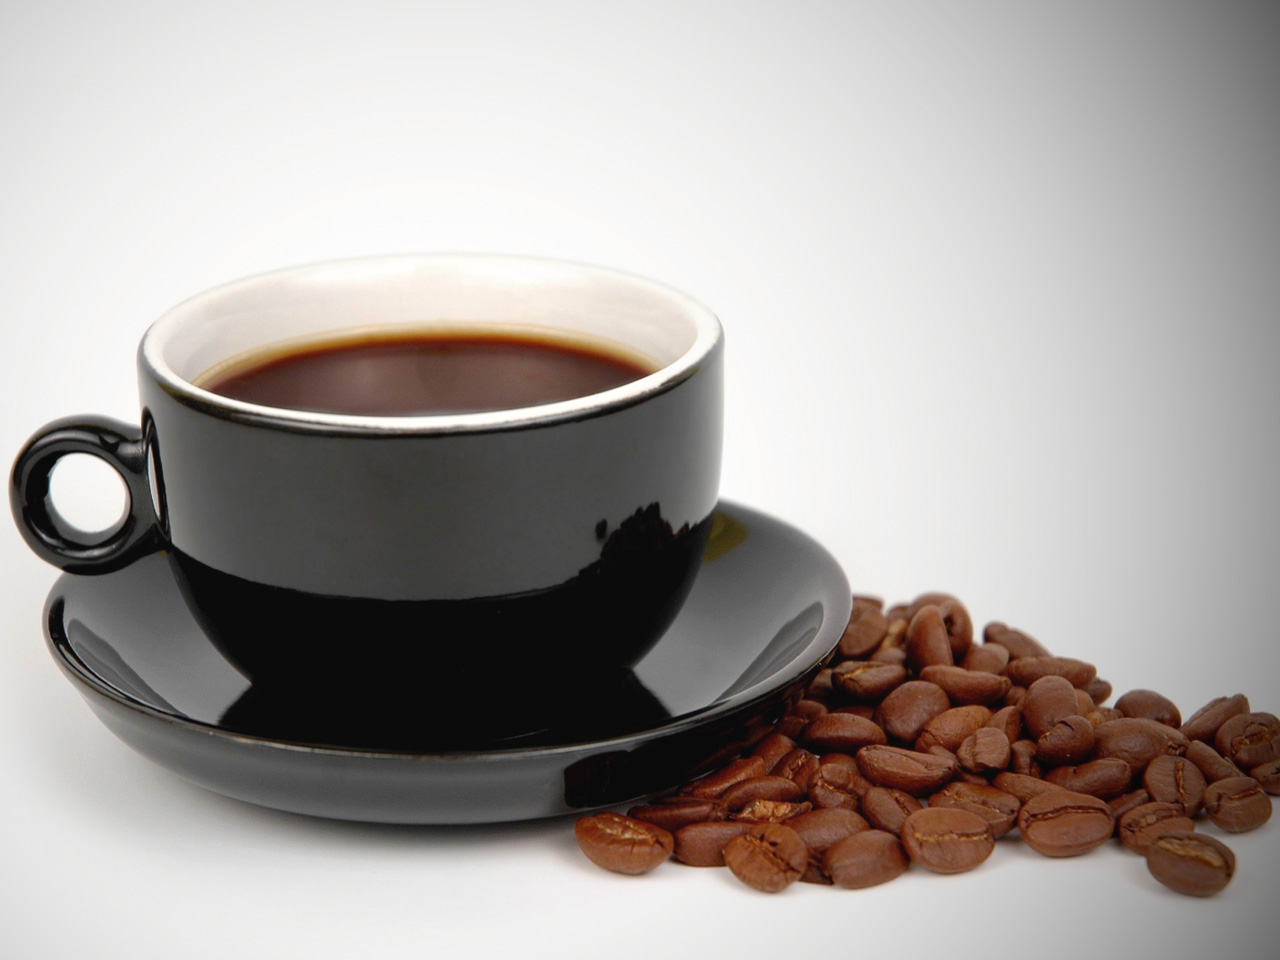 Coffee Hd Wallpapers | Free Coffee Cup Hd Wallpapers | Coffee Beans ...